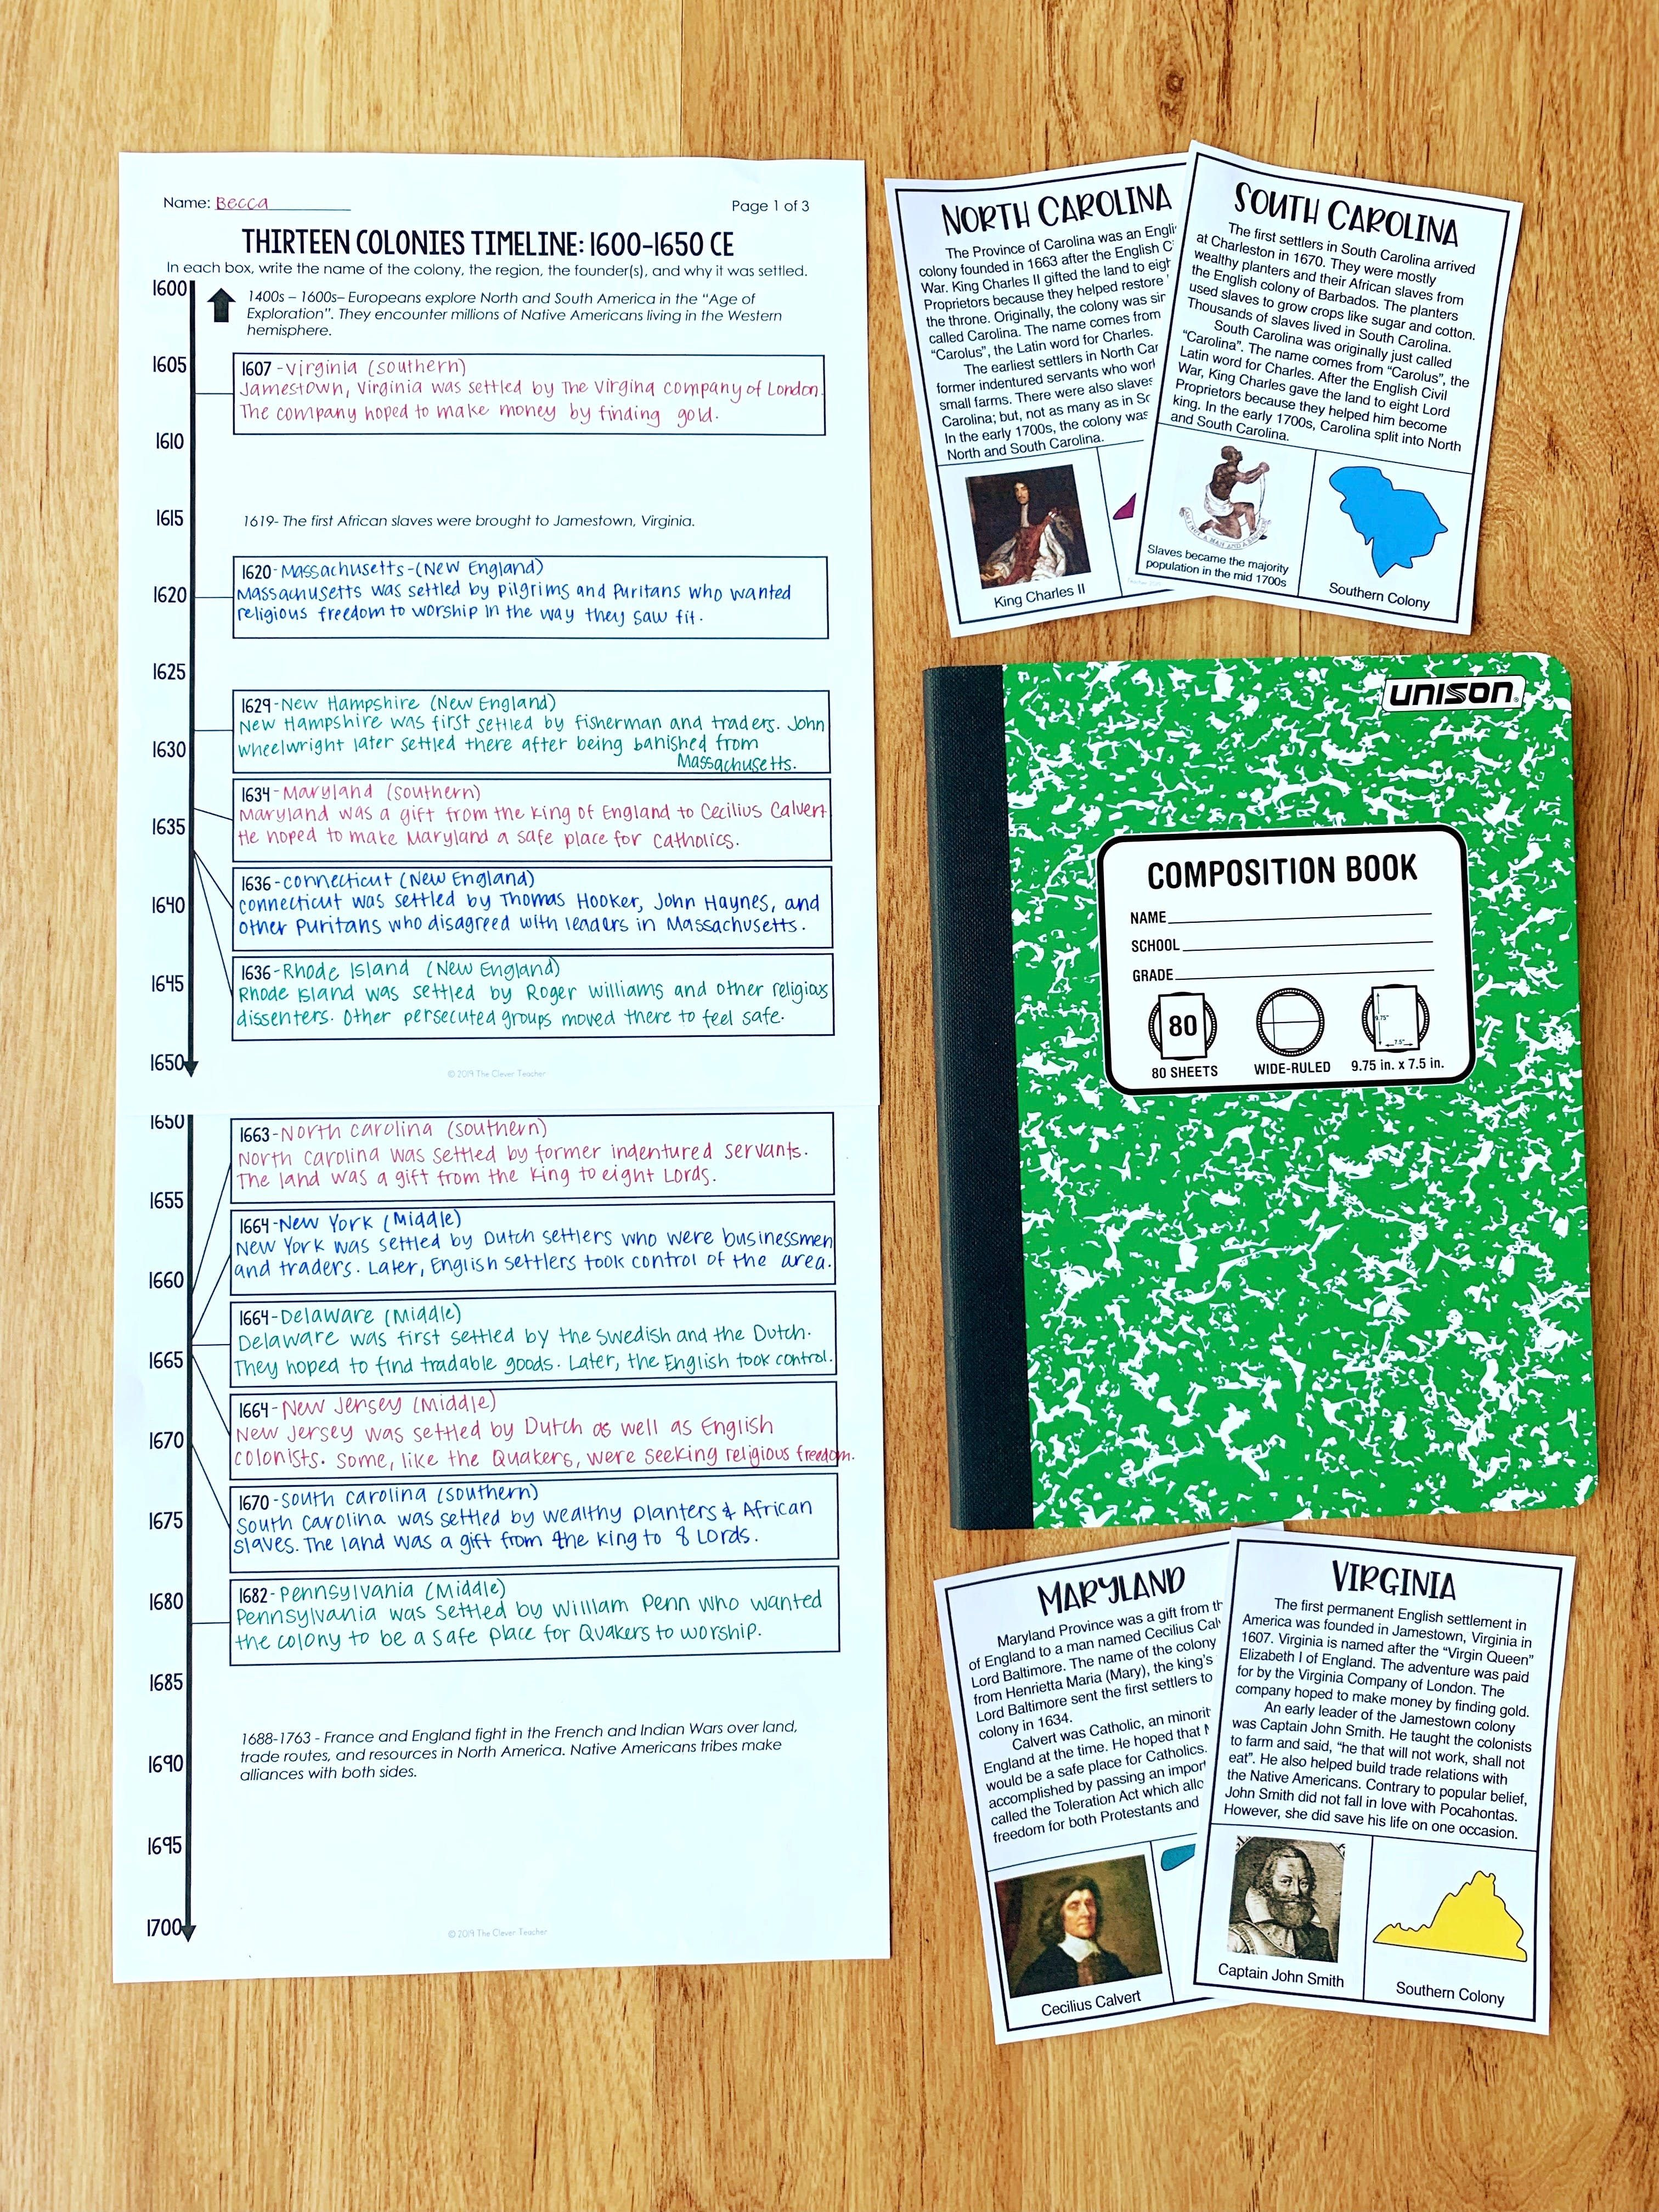 13 Colonies Videos For Students With Free Worksheets